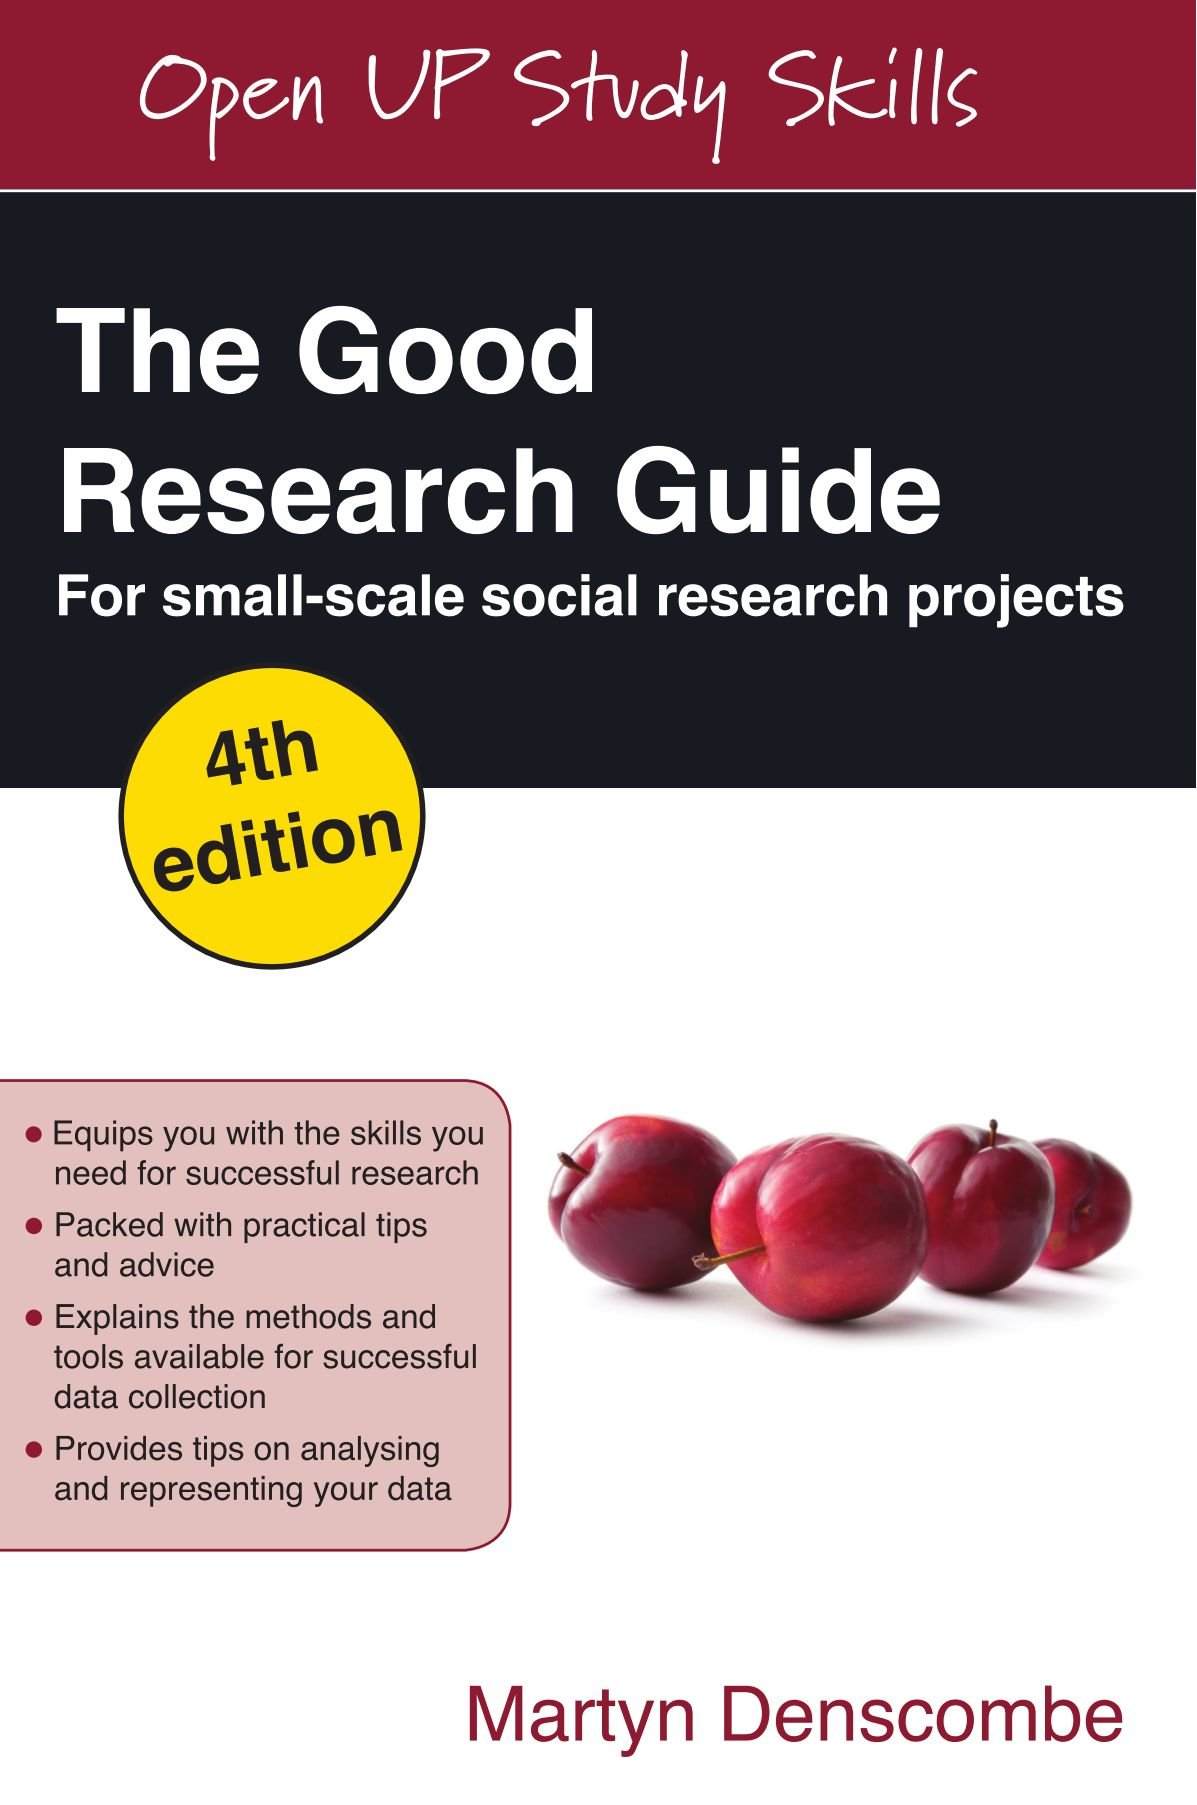 The Good Research Guide: For Small-Scale Social Research Projects: for small -scale social research projects: Amazon.co.uk: Martyn Denscombe: Books